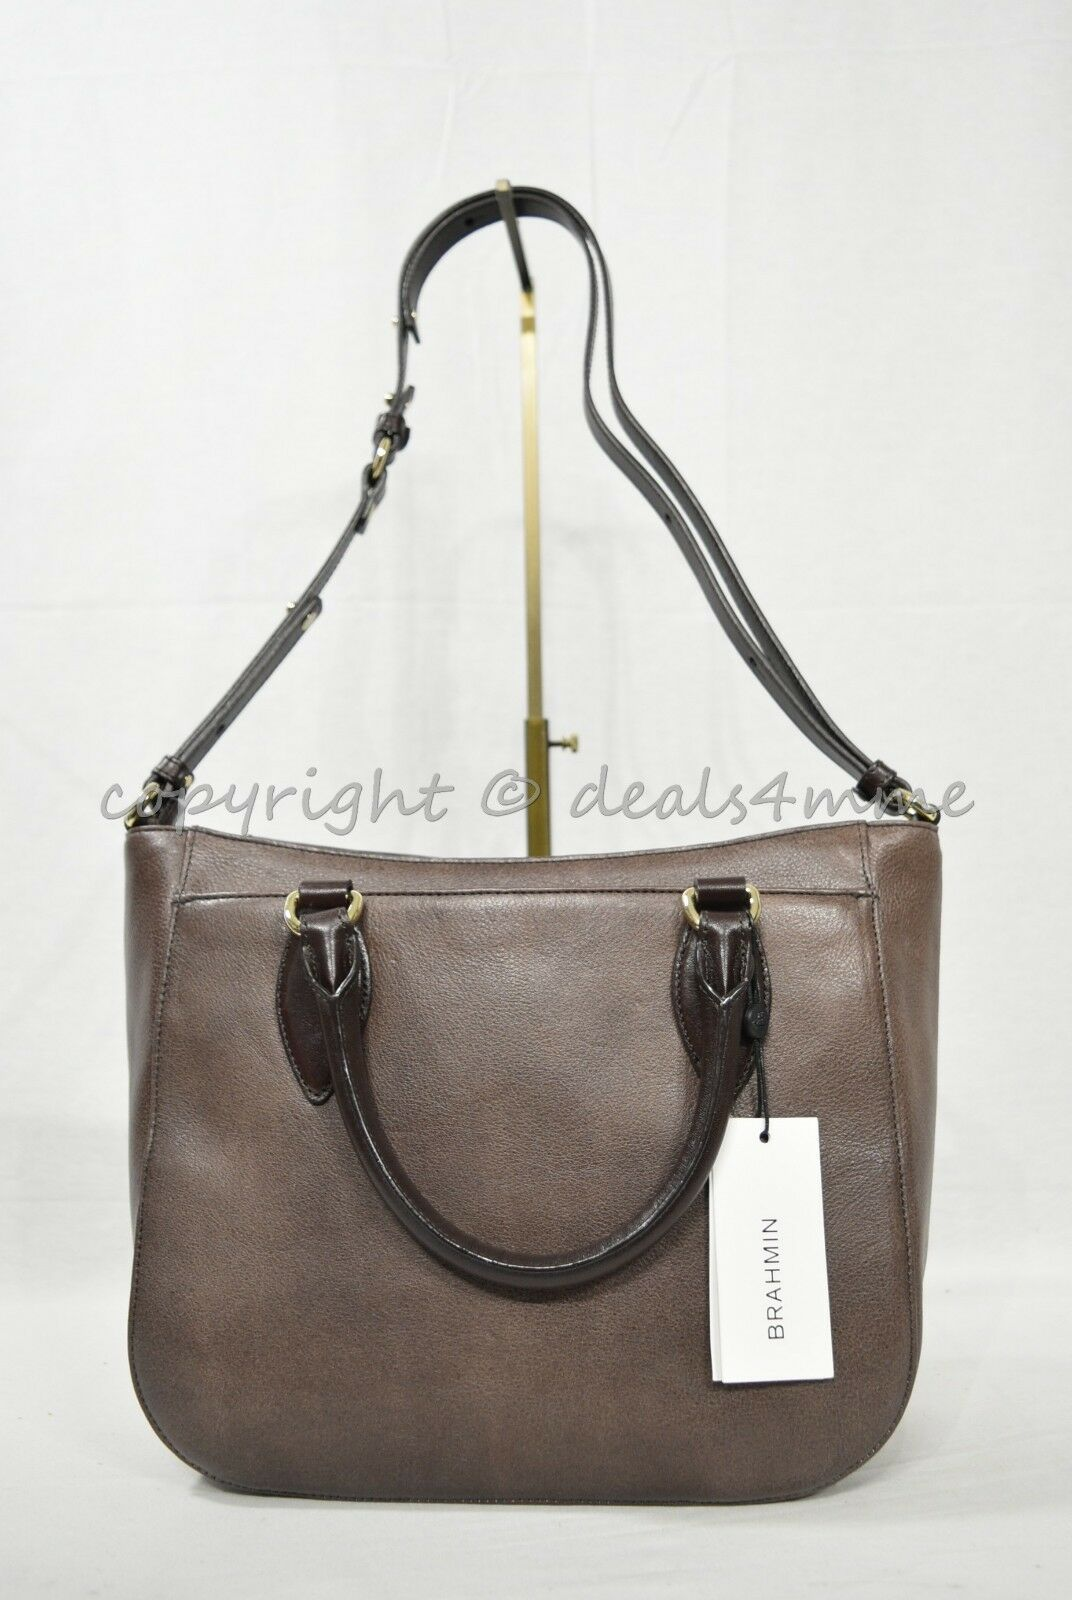 NWT Brahmin Small Lena Leather Satchel/Shoulder Bag in Brown Barrow image 12